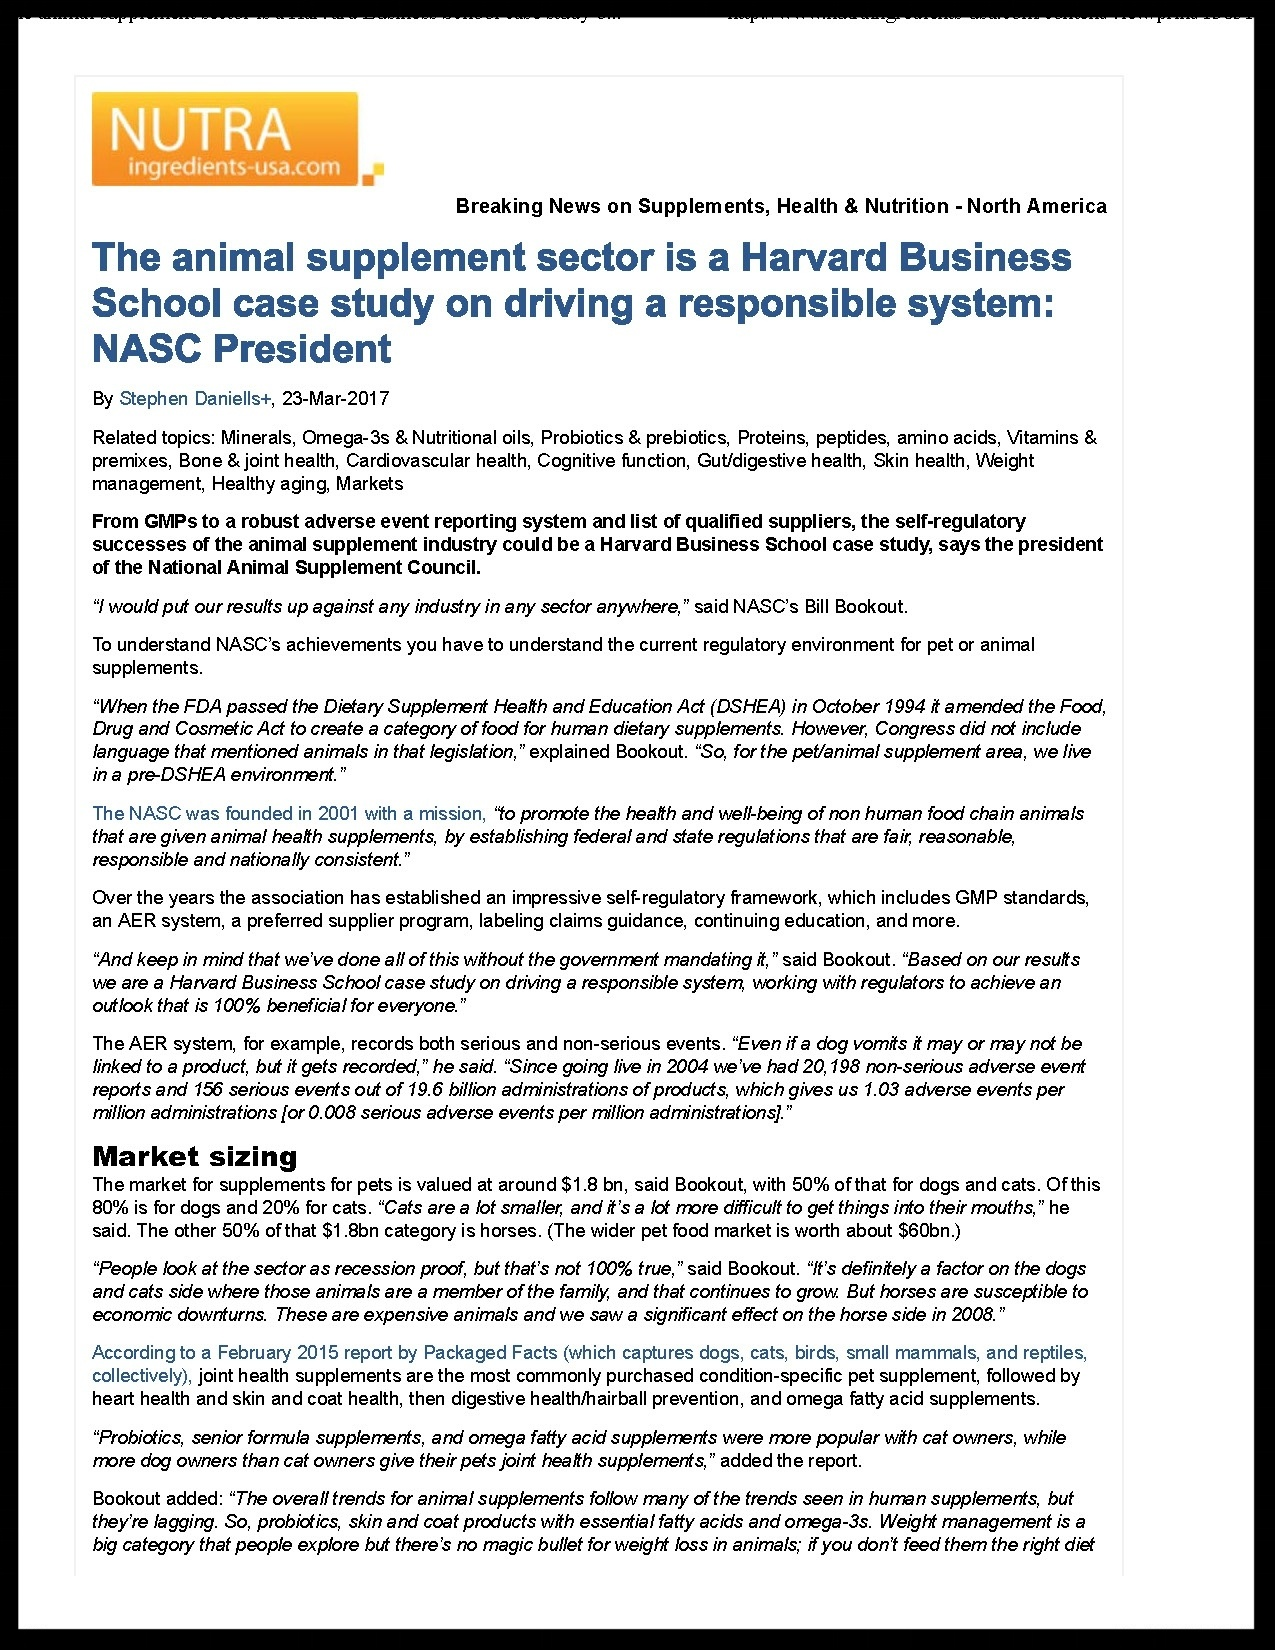 NASC in the Media: Bill Bookout Talks Animal Supplements